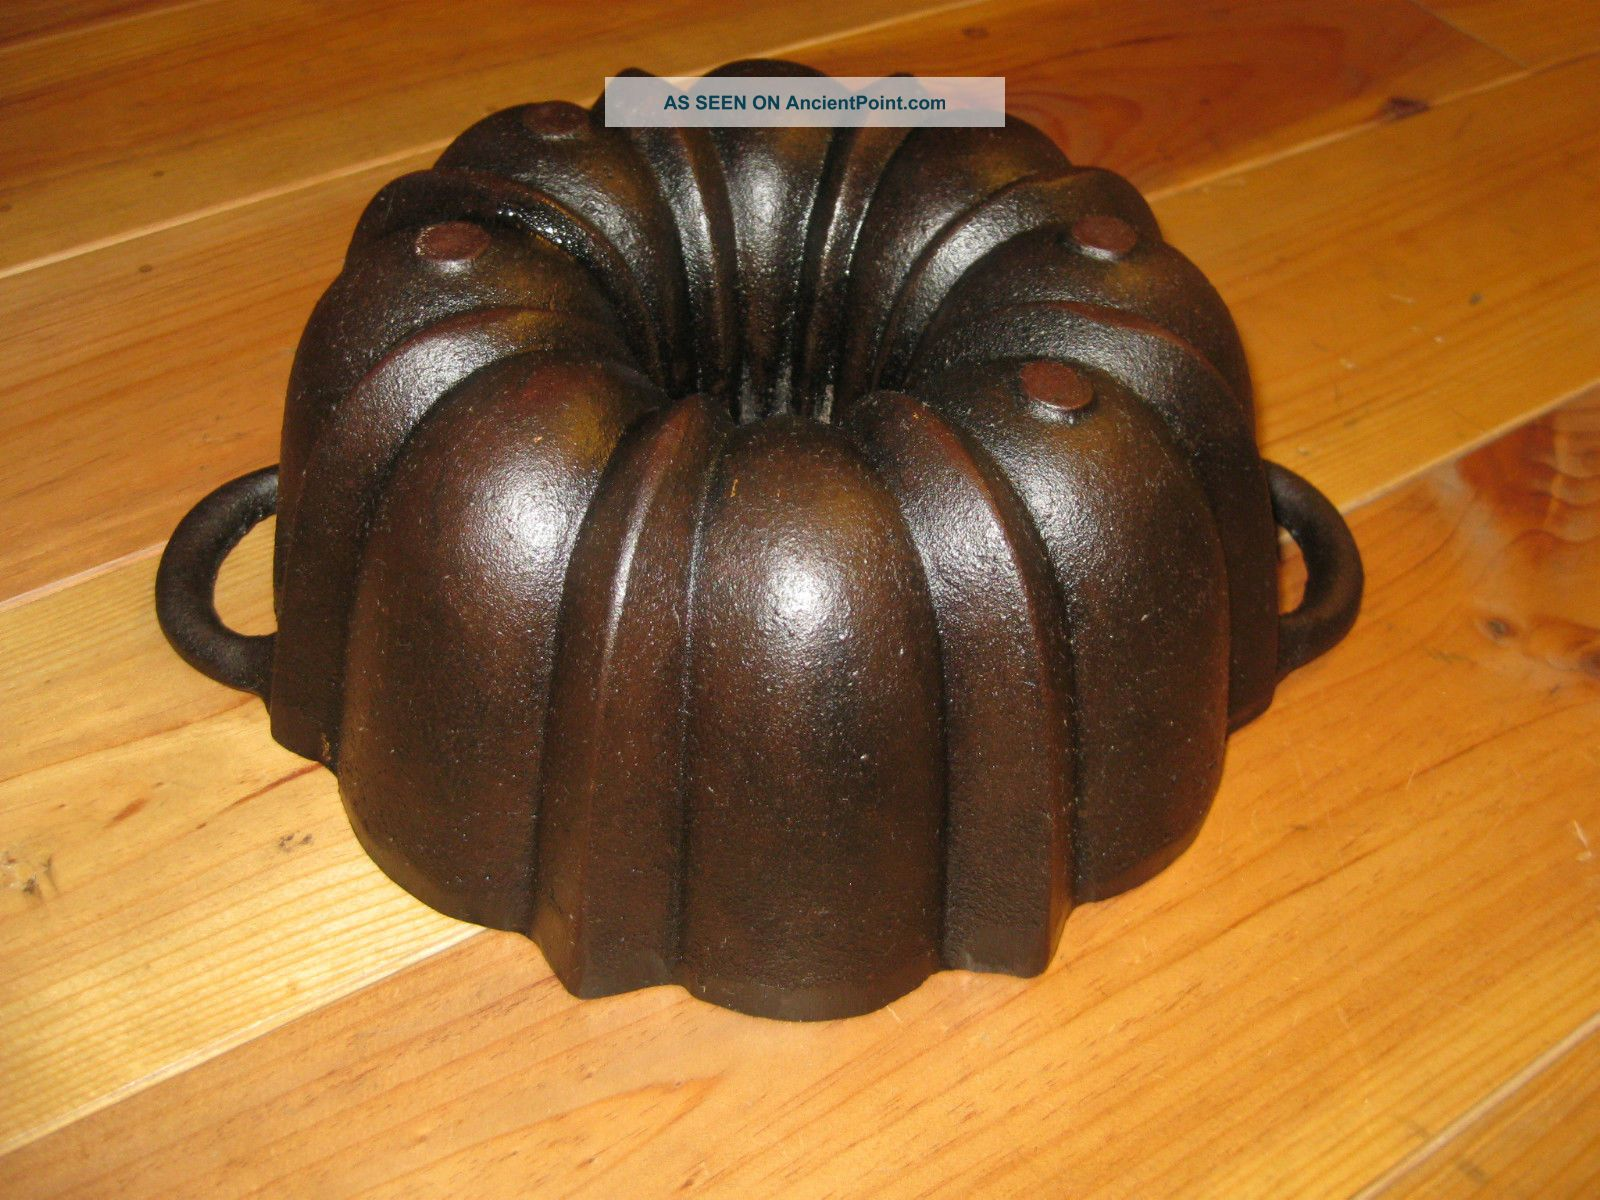 Very Old And Antique Cast Iron Bundt Pan Massive Heavy Quality Germany 3318 G Other Antique Home & Hearth photo